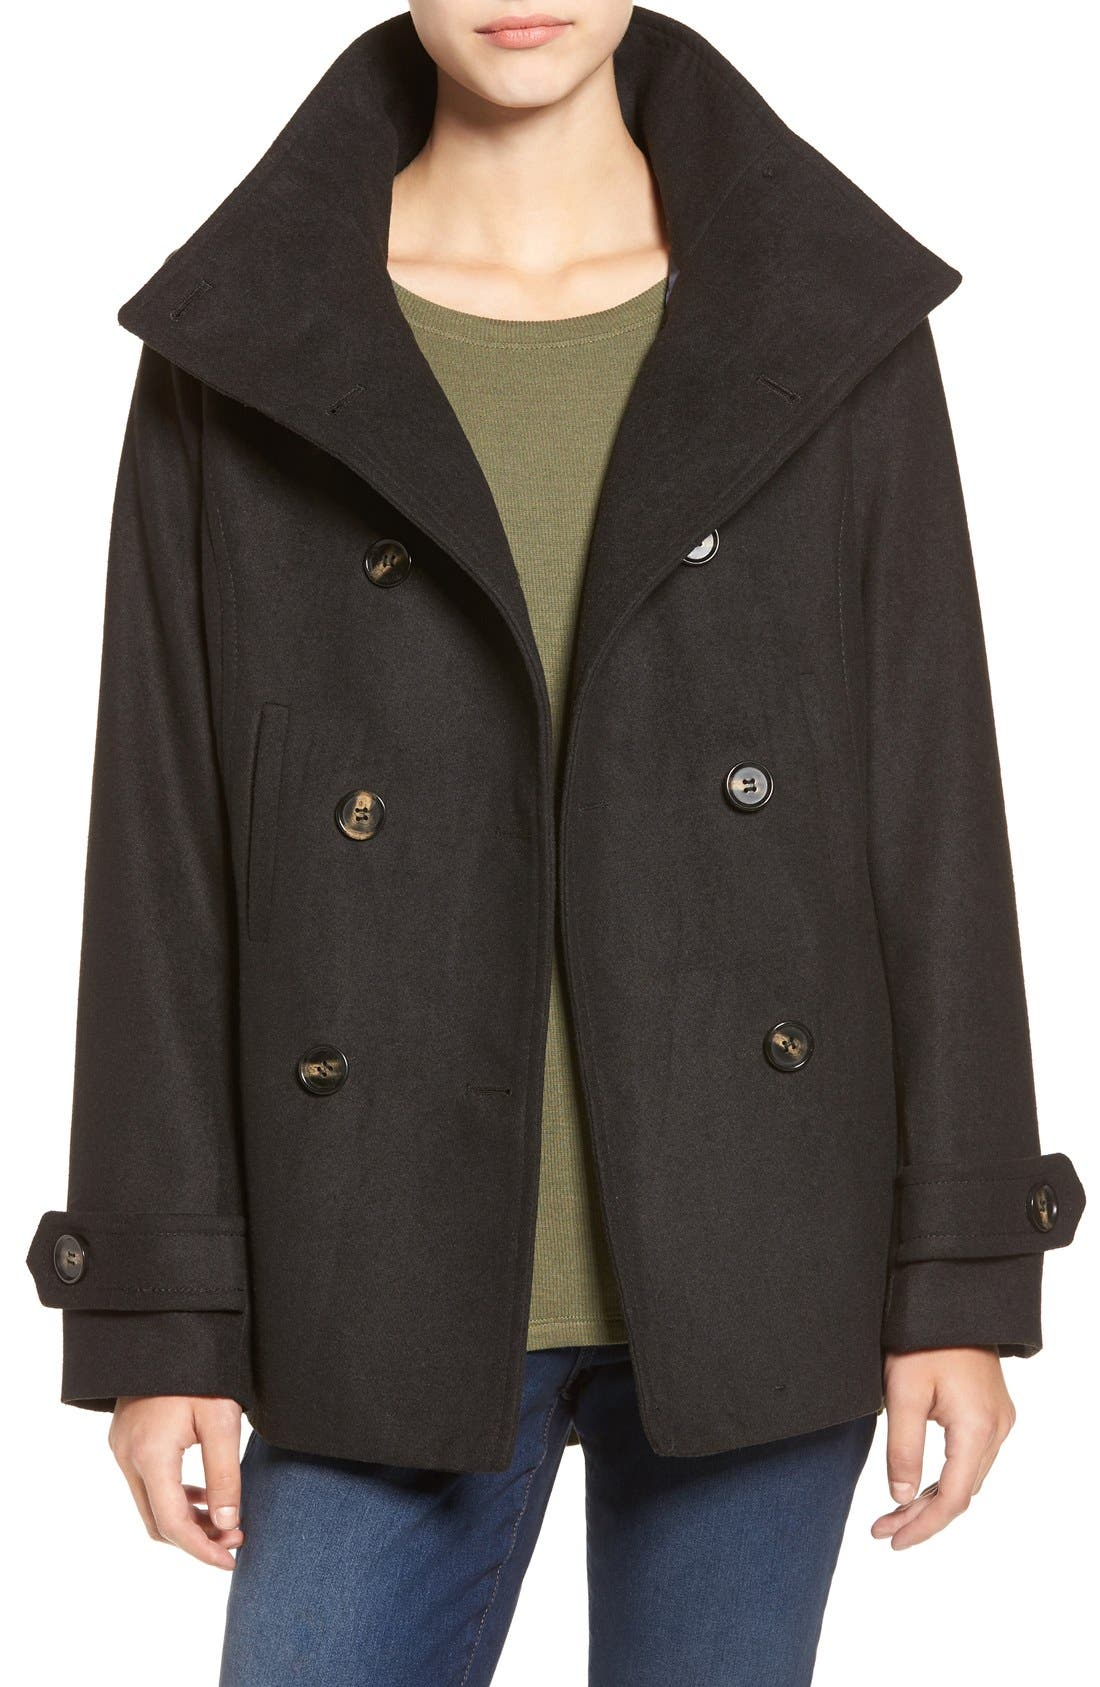 Main Image - Thread & Supply Double Breasted Peacoat